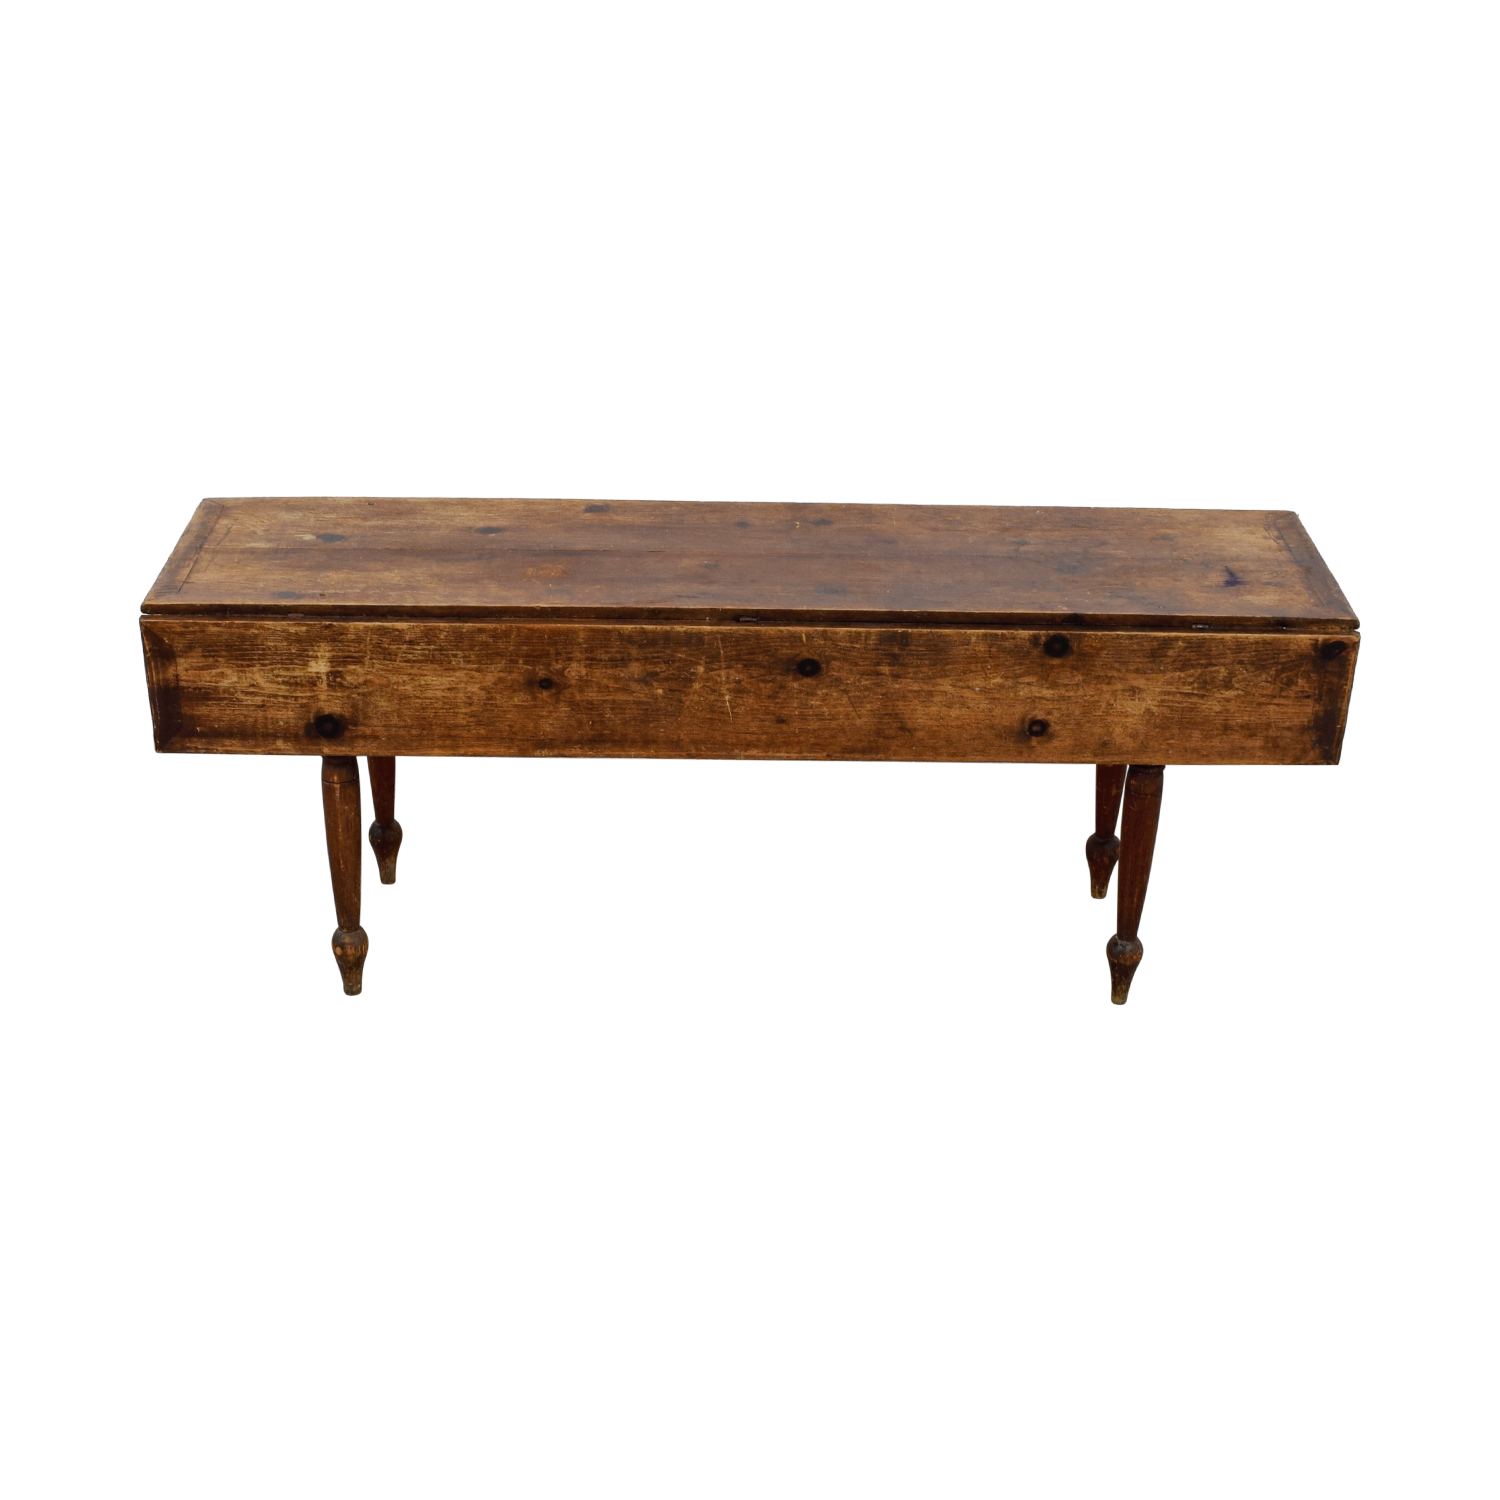 Vintage Rustic Drop-Leaf Wood Table